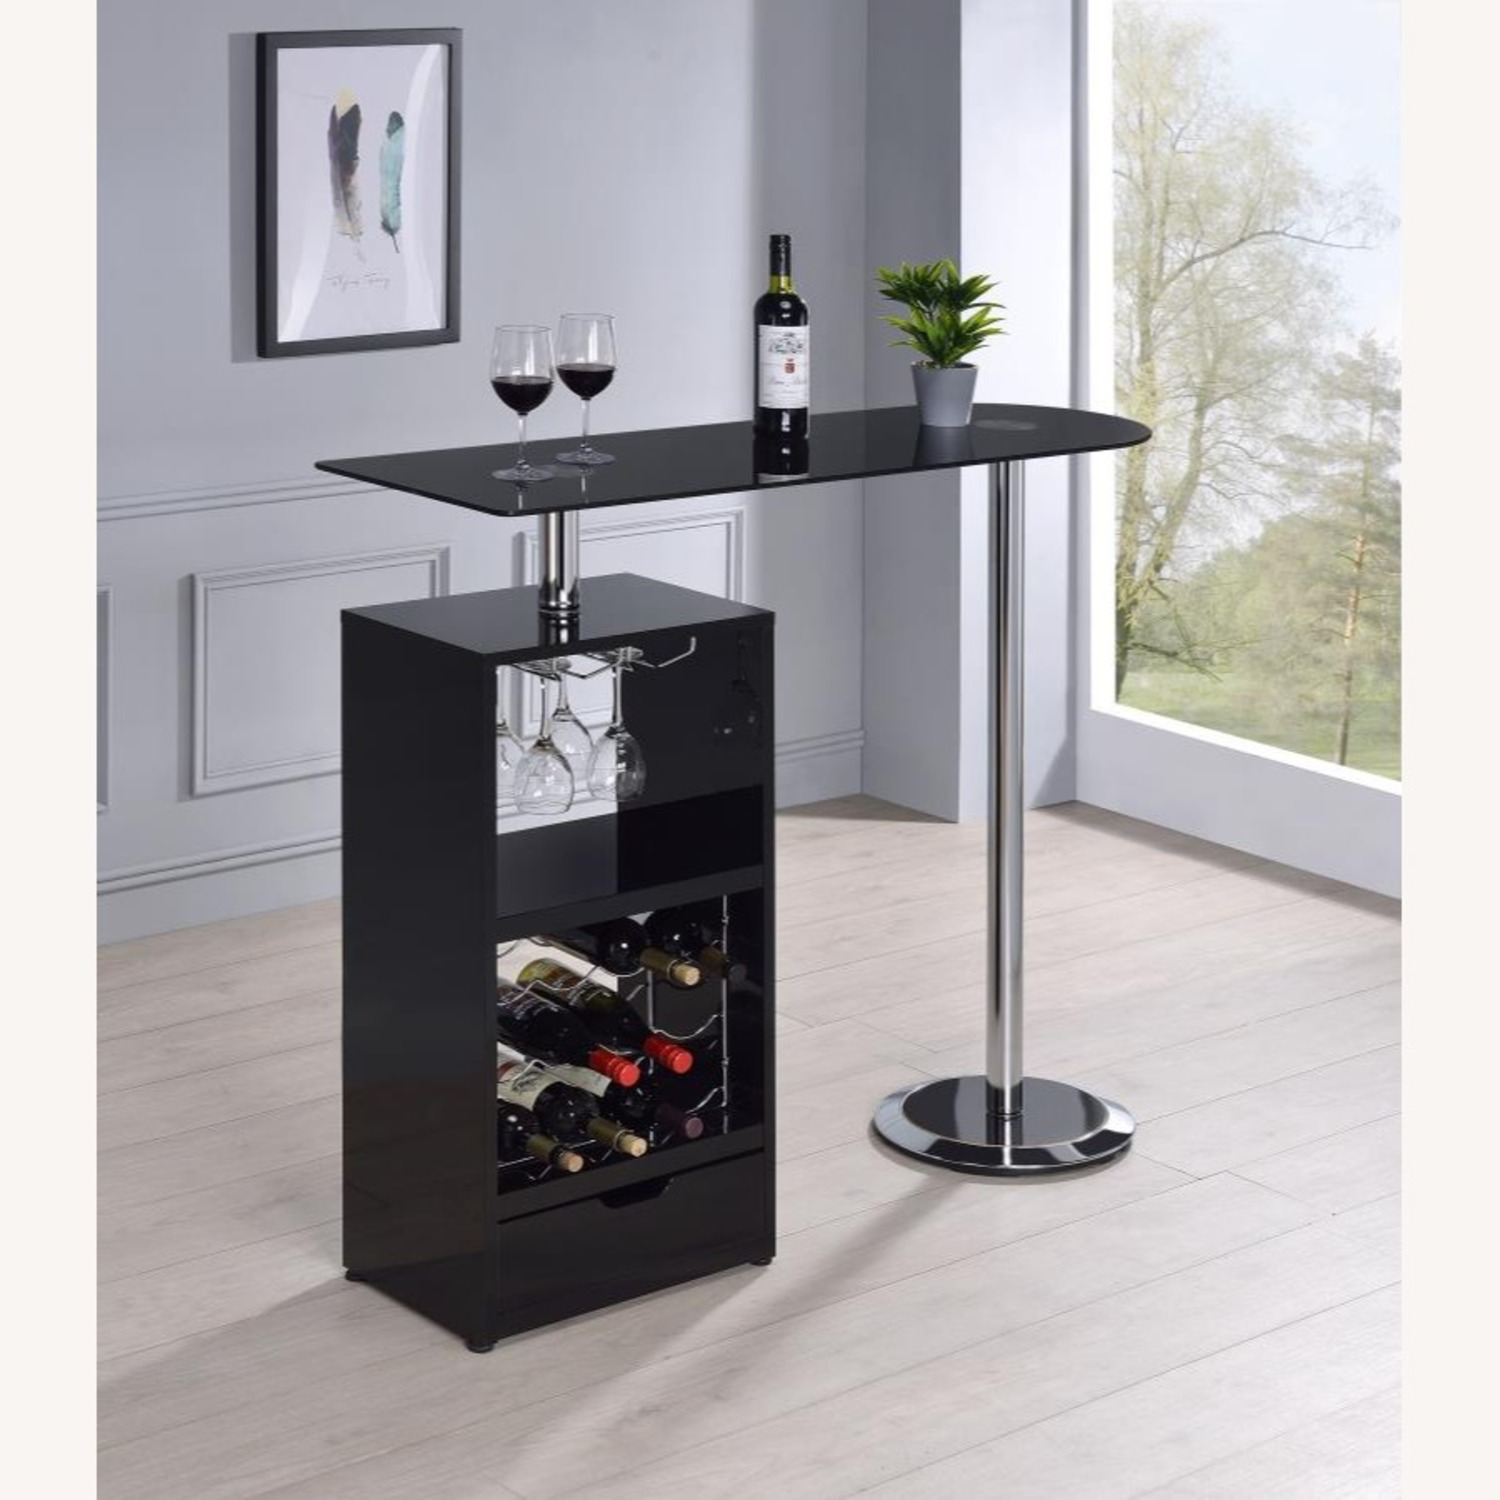 Bar Table In High Gloss Black Lacquer Finish - image-6